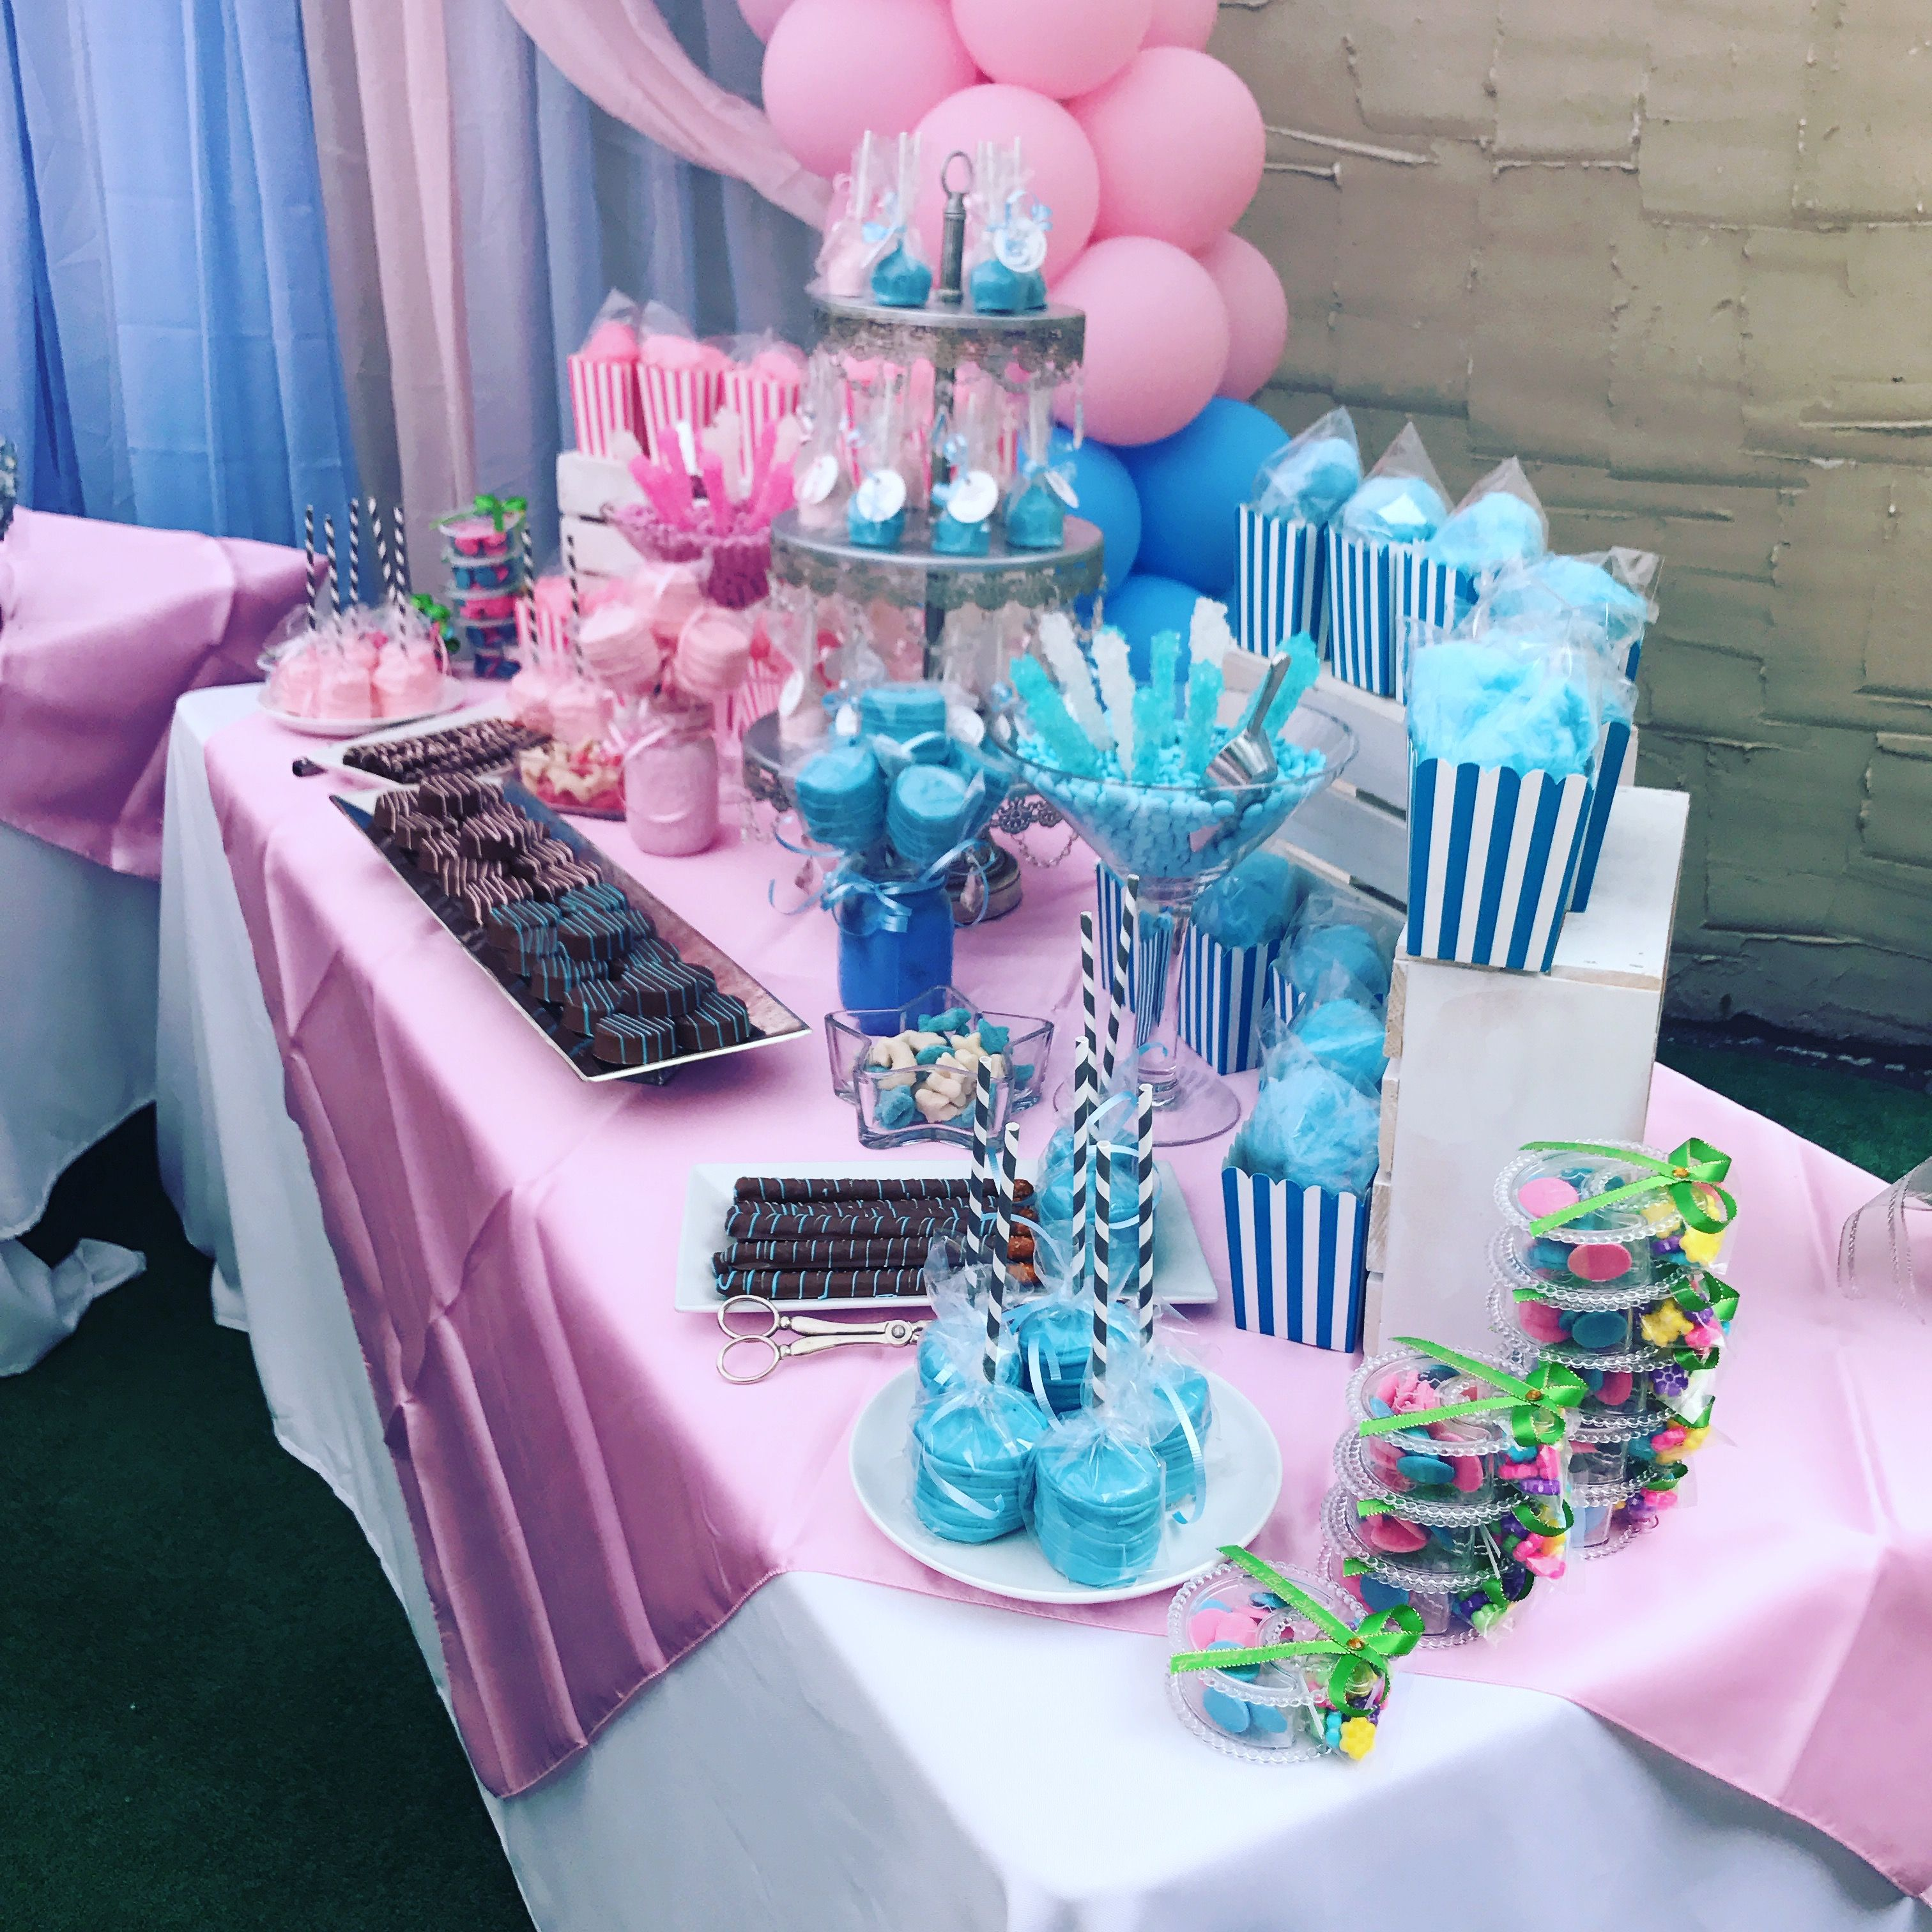 Baby Shower Reveal Party: Baby Shower Candy Table That We Made For A Gender Reveal